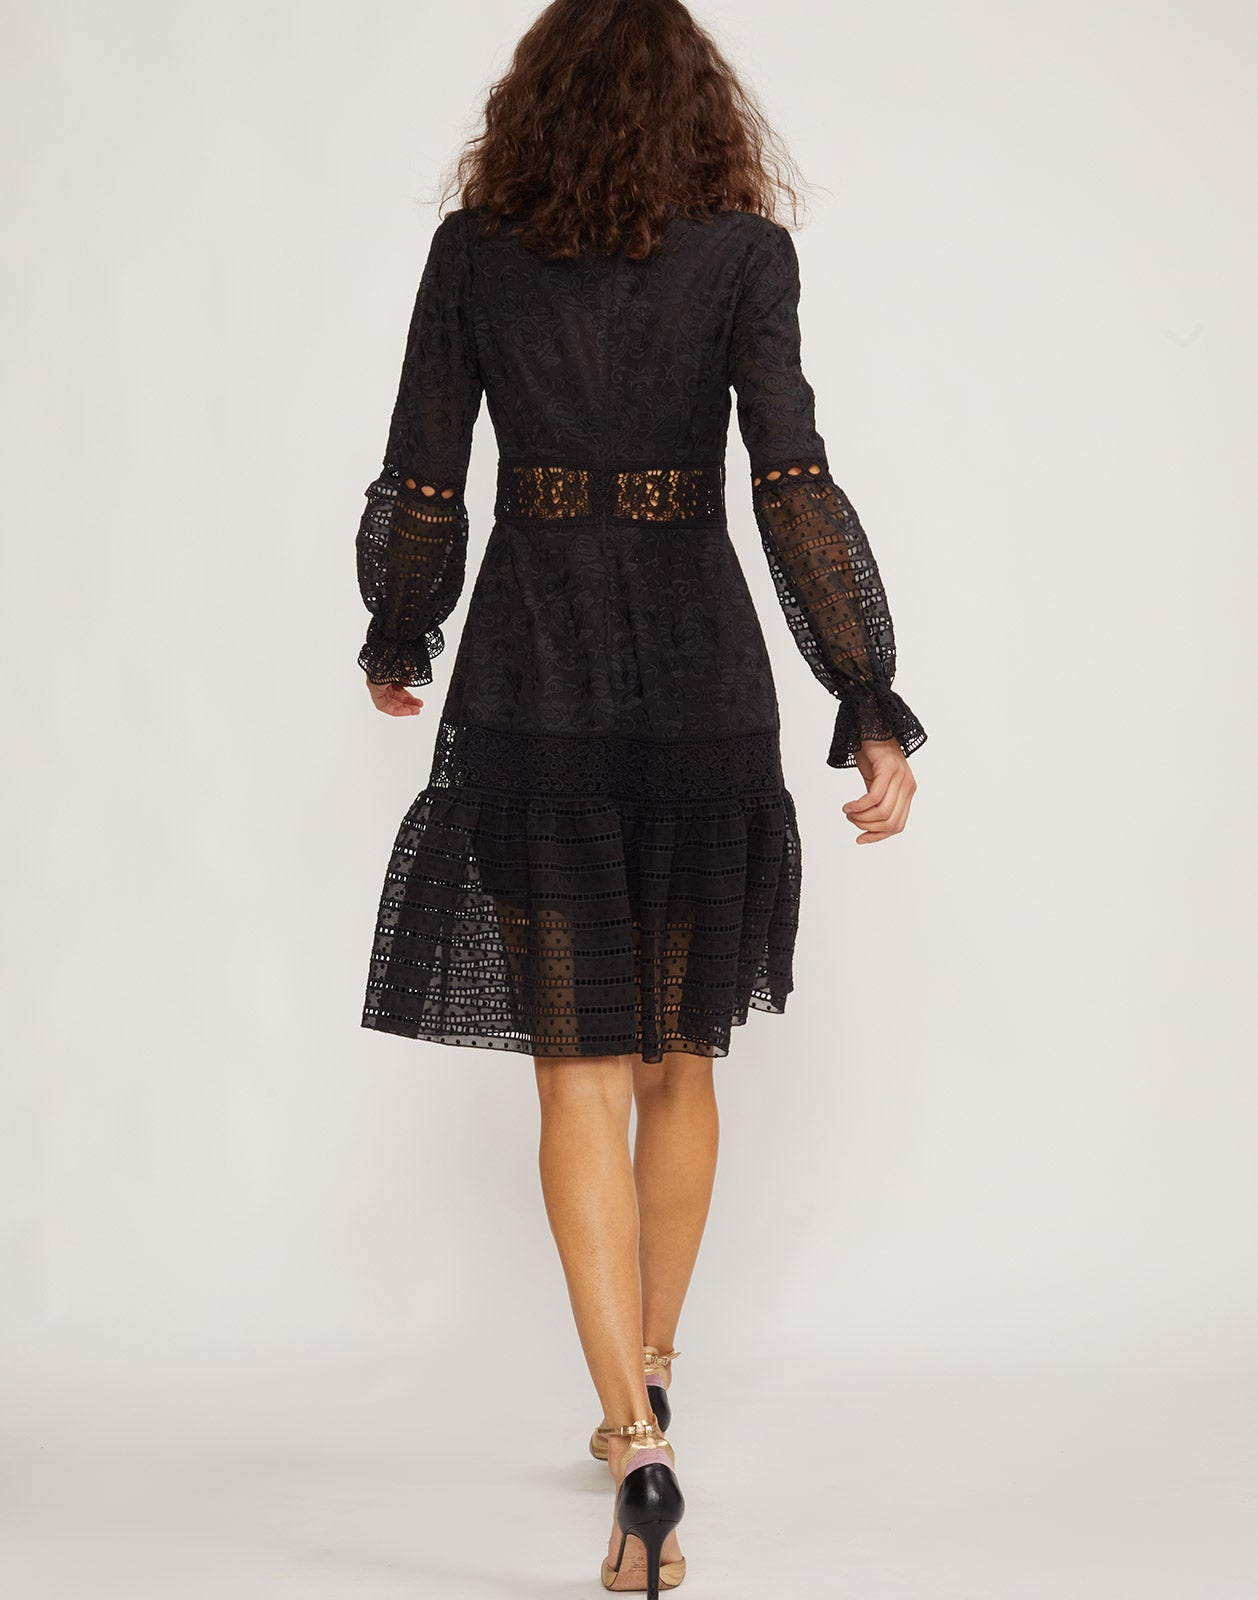 Back view of model wearing Wicker Park Lace Eyelet dress.